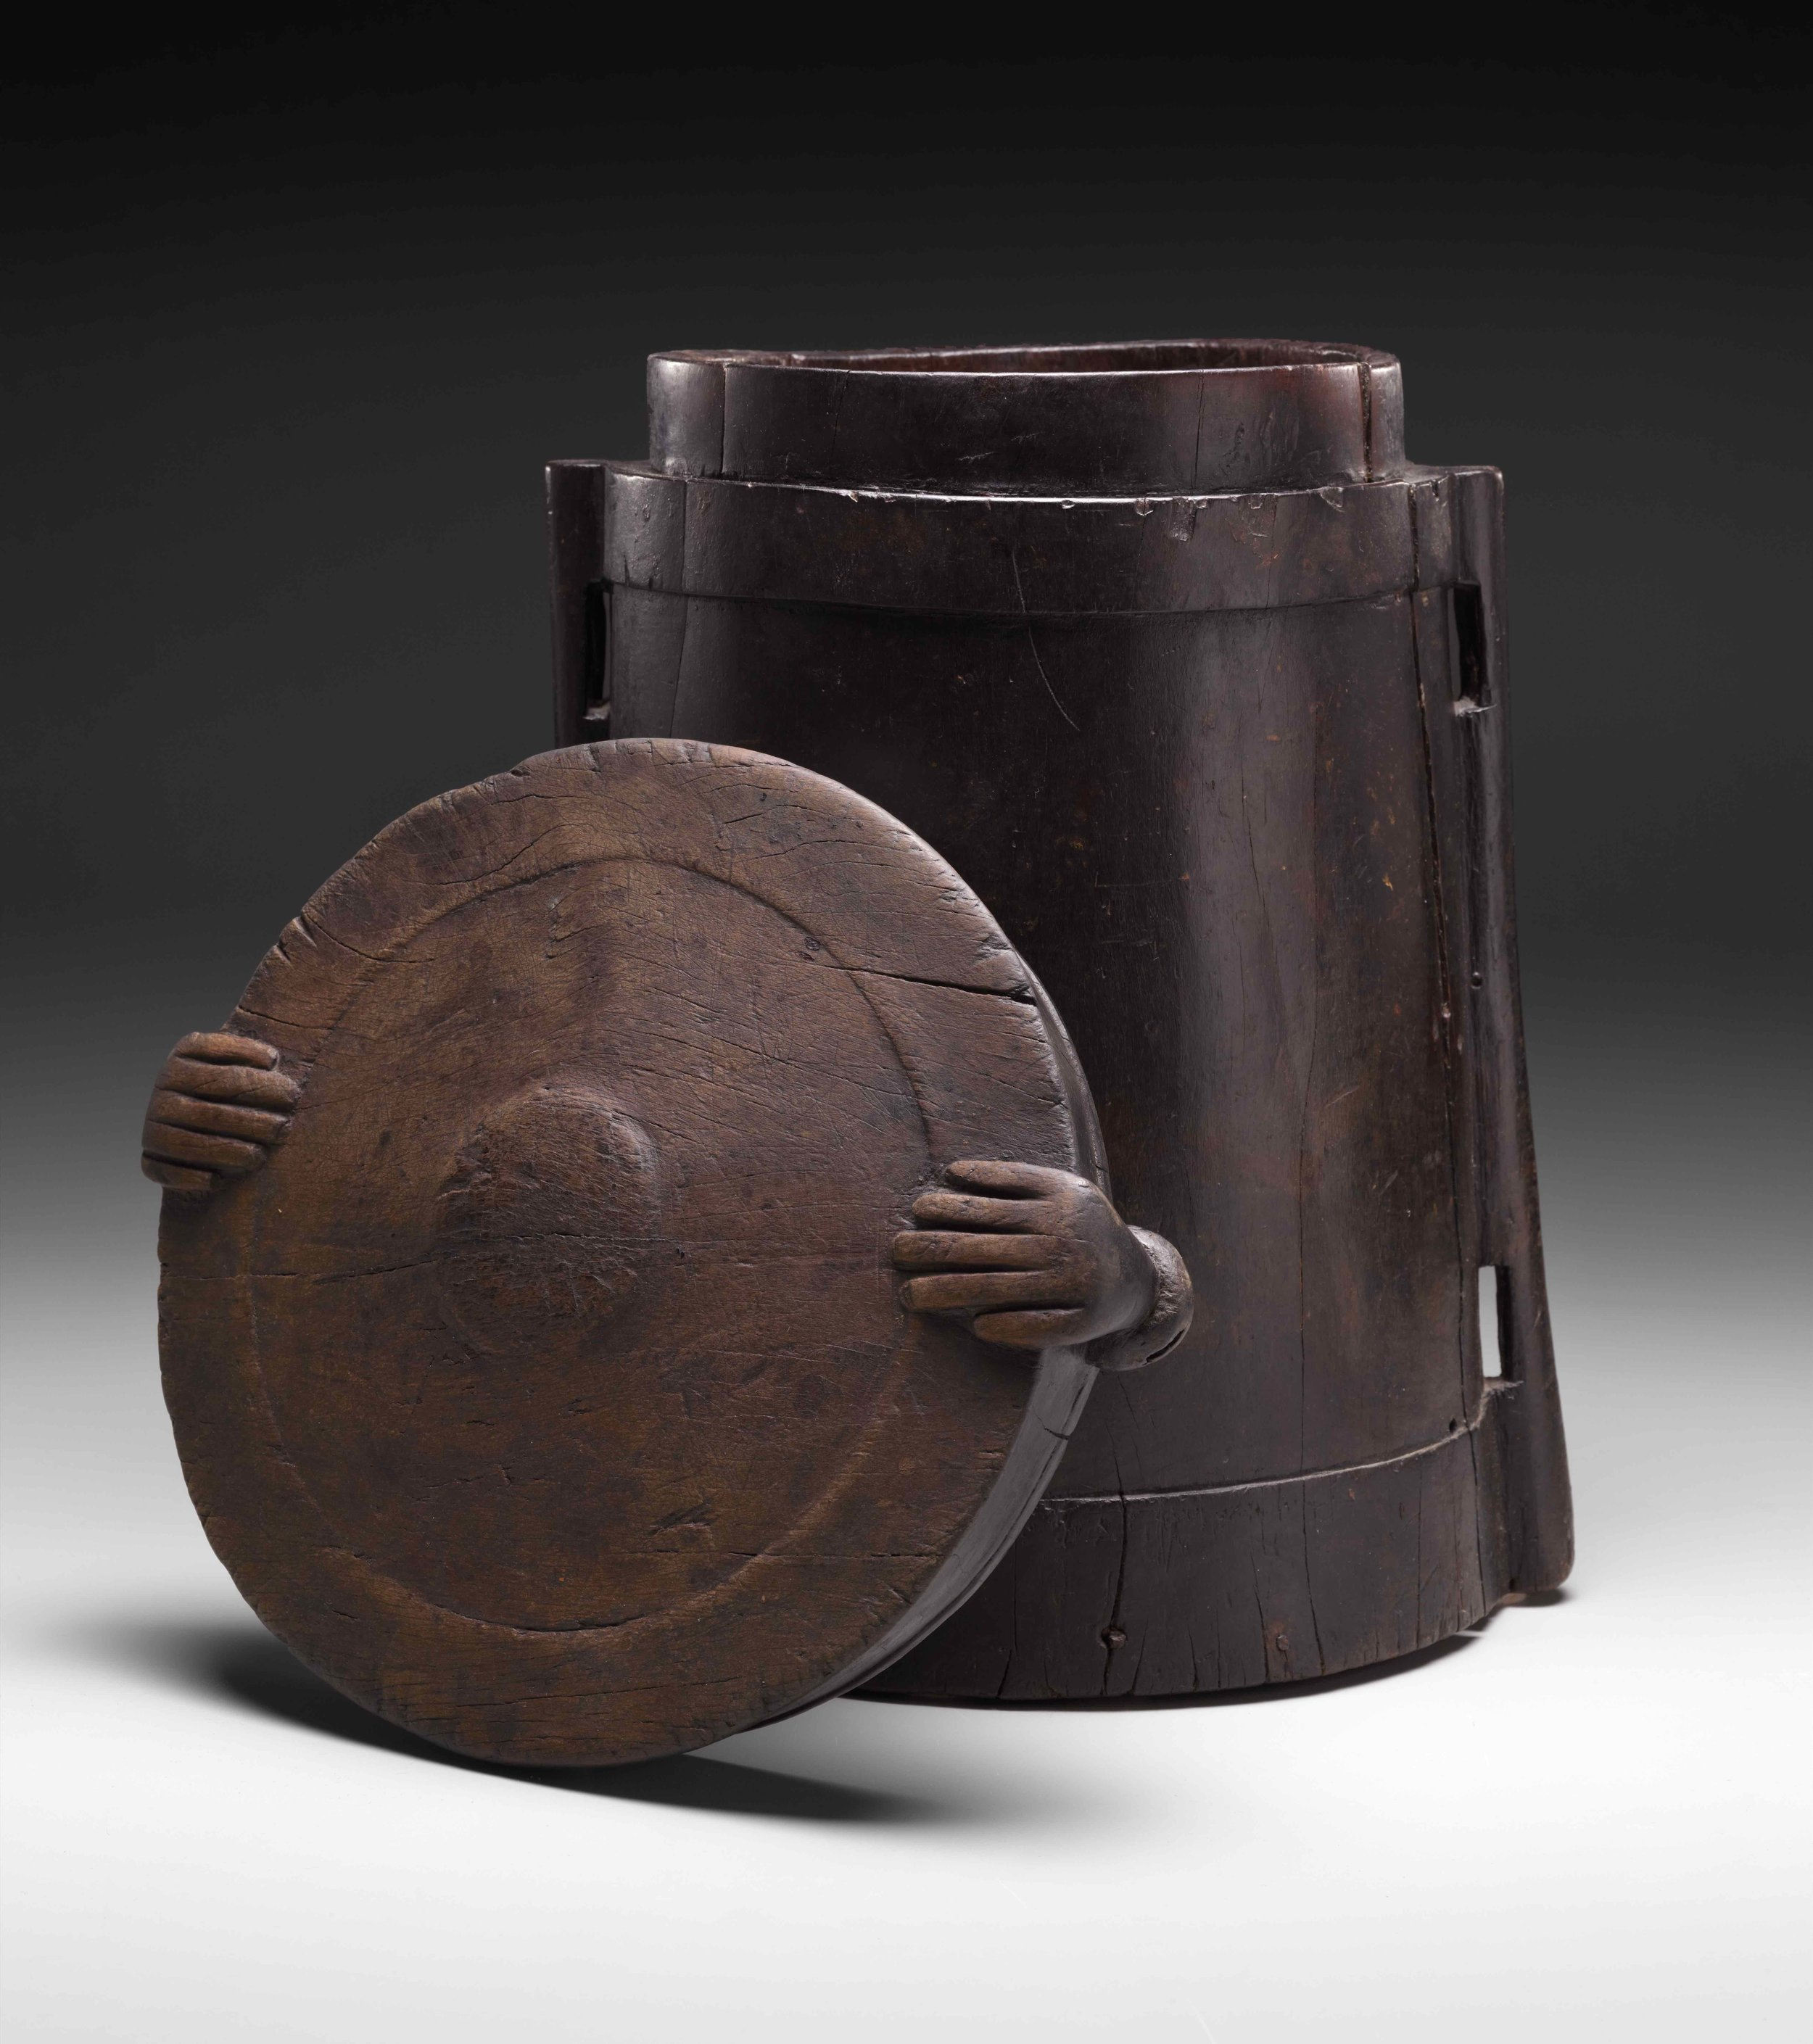 Aristocratic Wooden Storage Container with Human Hands © The Dallas Museum of Art | Texas, USA